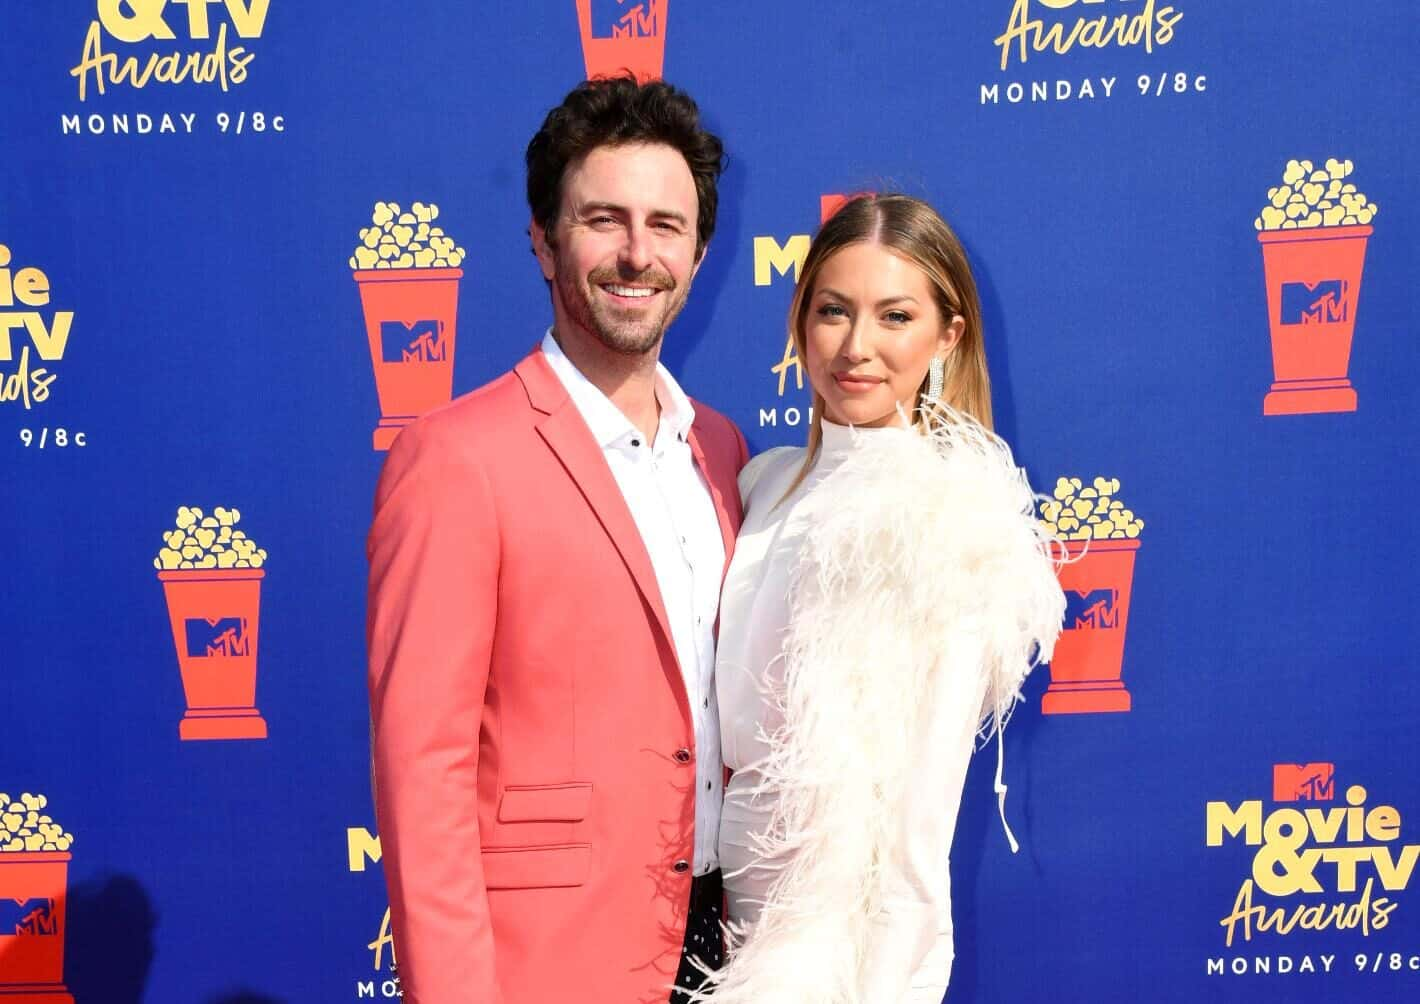 Beau Clark Shares Photo of Stassi Schroeder After Just Giving Birth to Daughter Hartford as the New Mom and Vanderpump Rules Alum Admits to Suffering From Separation Anxiety